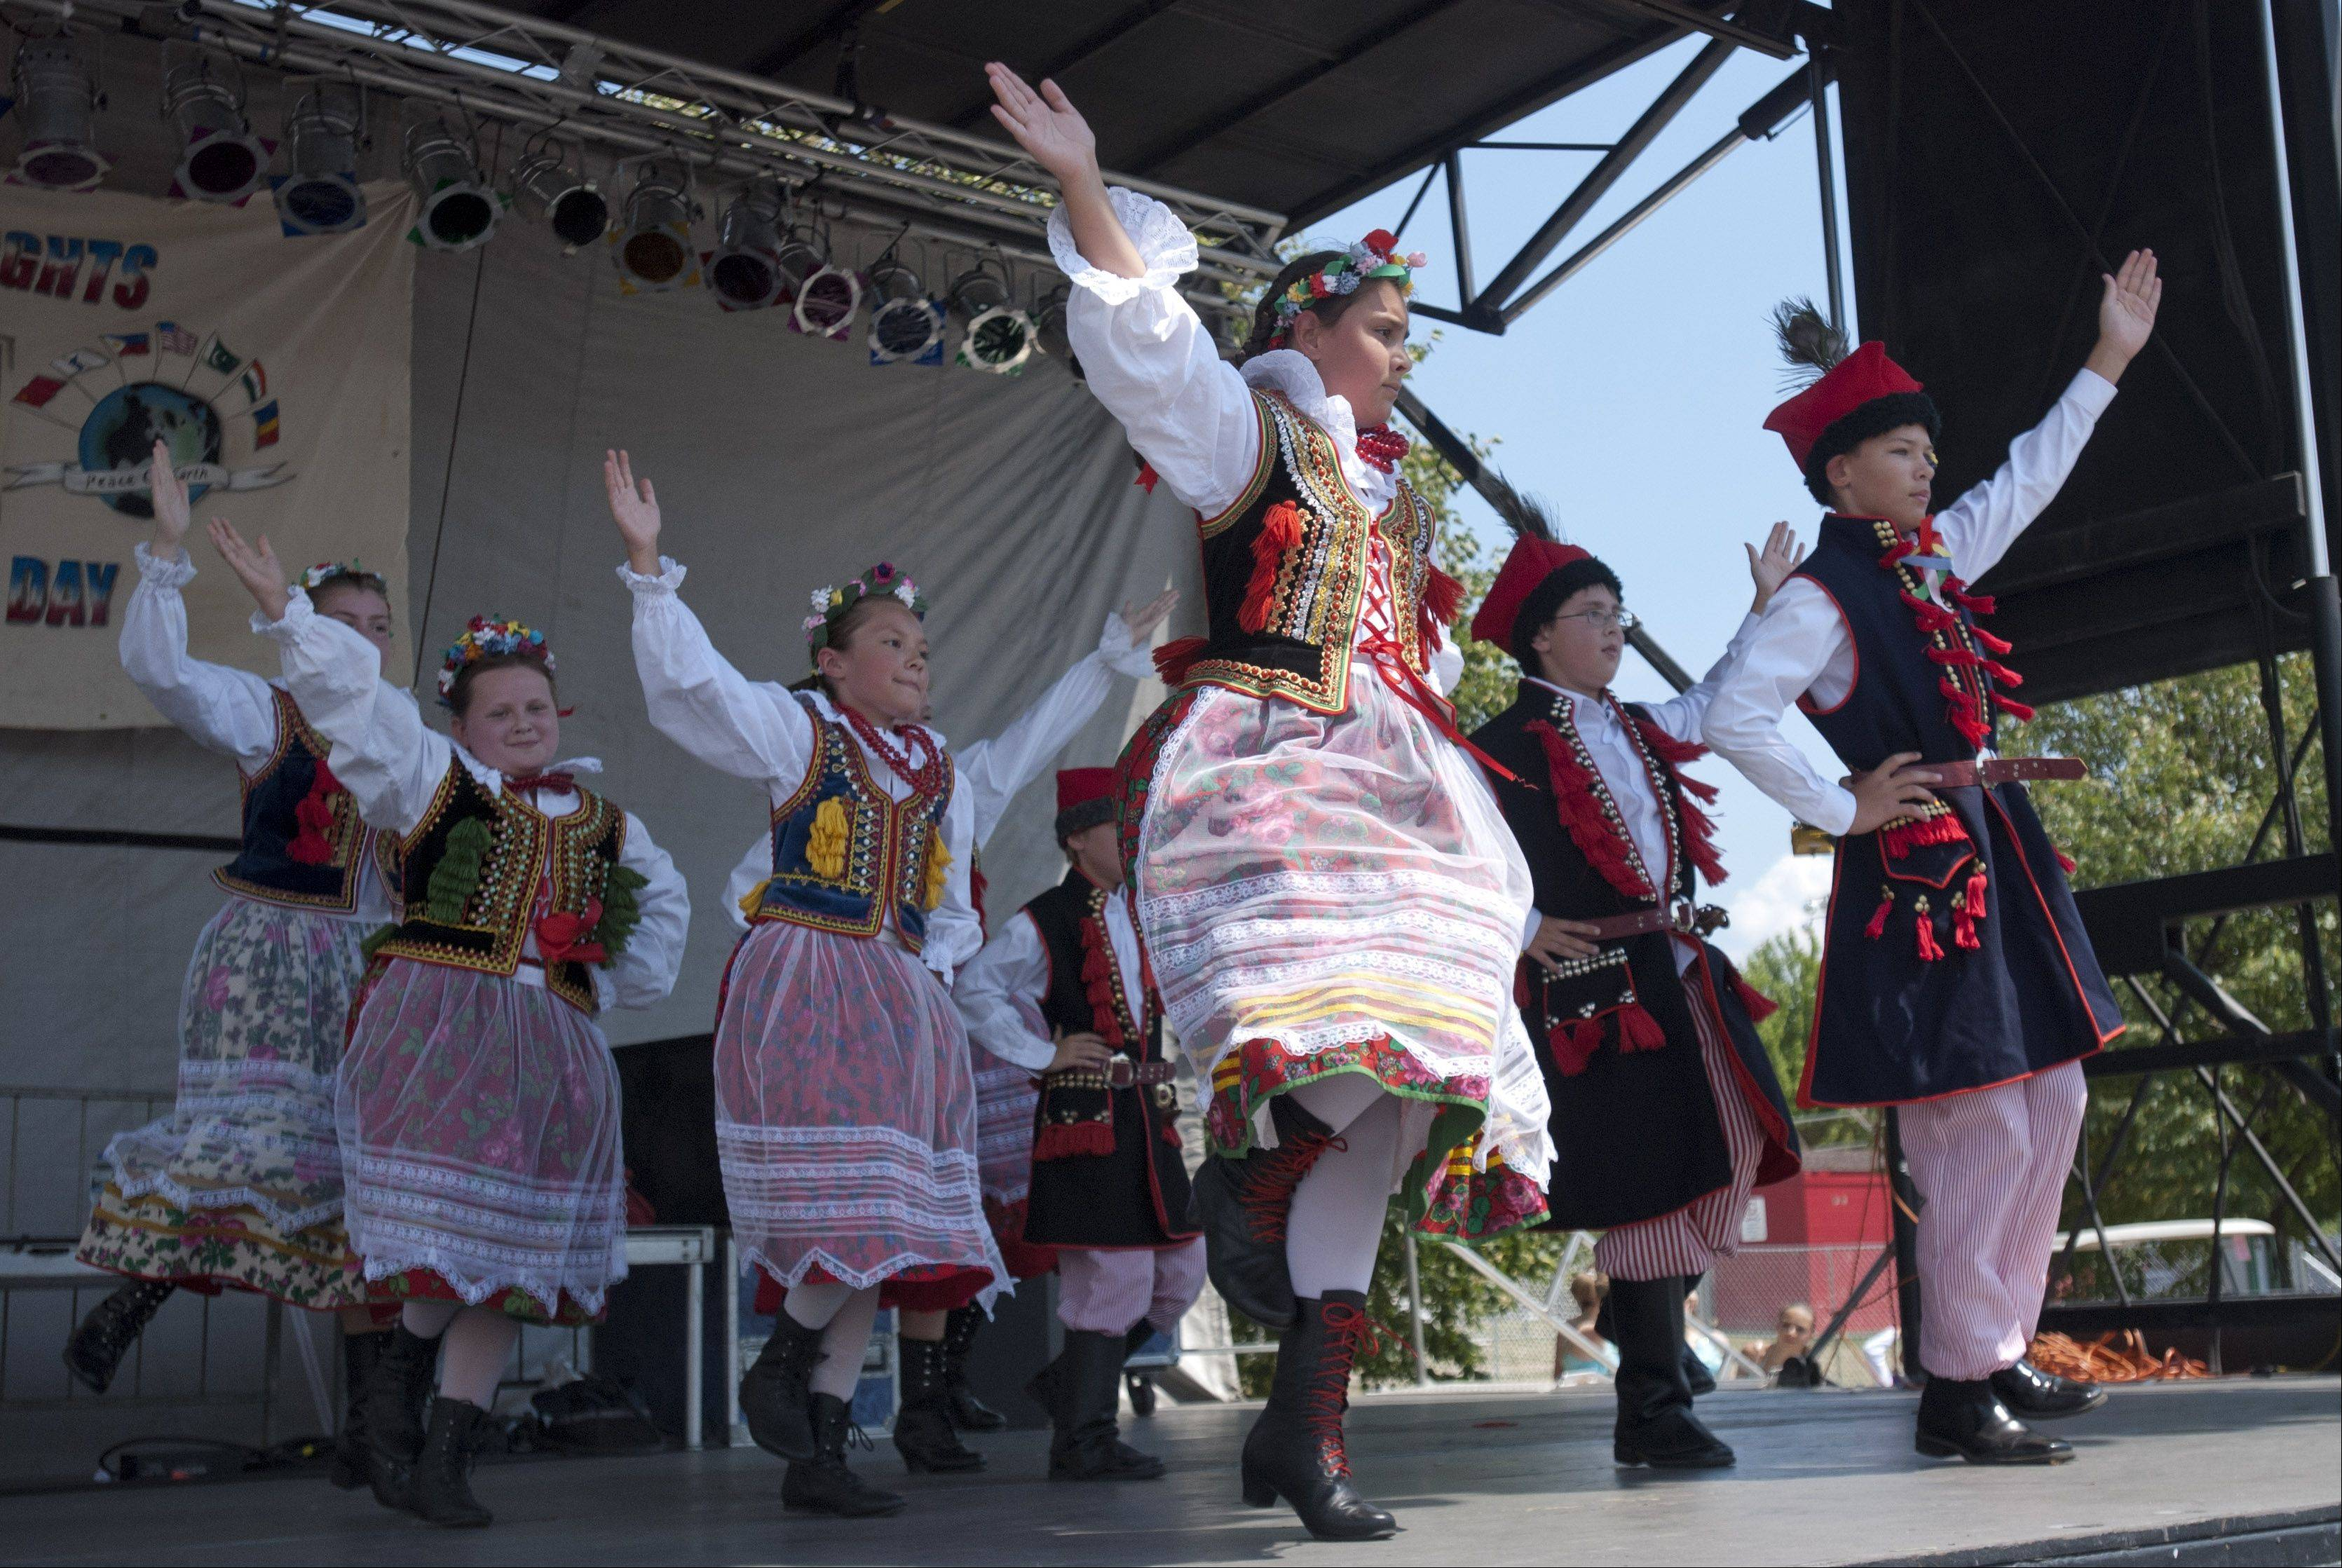 Members of the Addison park district Polish Dance Group perform during International Day at Glendale Heights' festival at Camera Park.